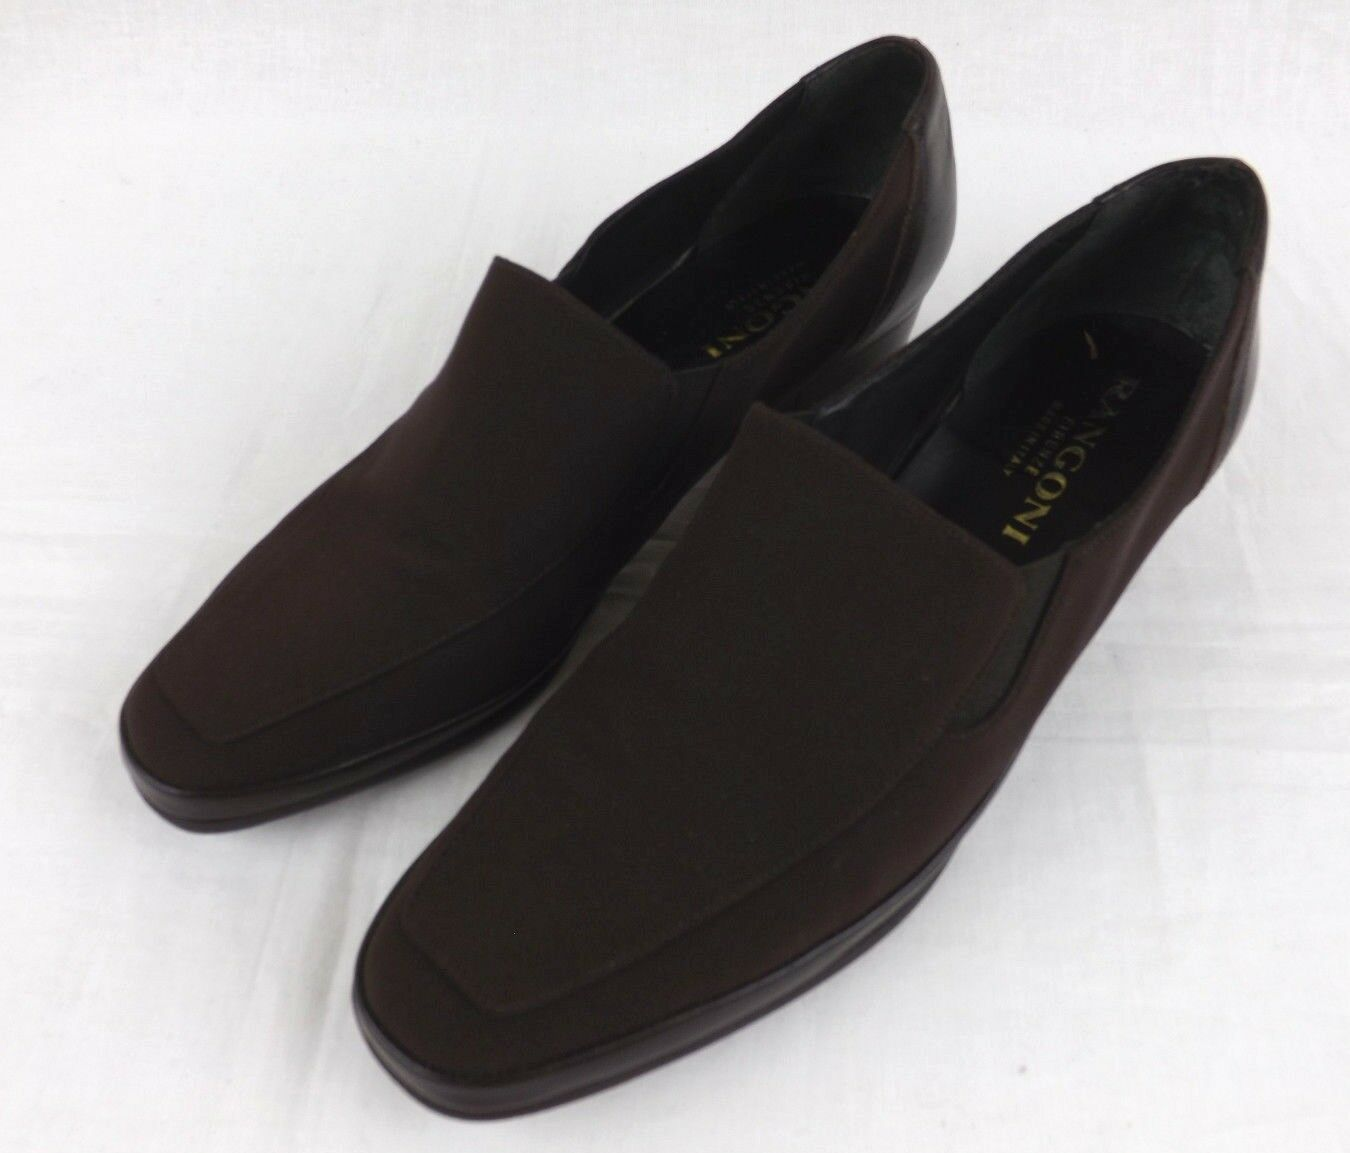 RANGONI Firenze ELVIRA Brown Leather Fabric Loafers Pumps Women's 8.5 AAA shoes